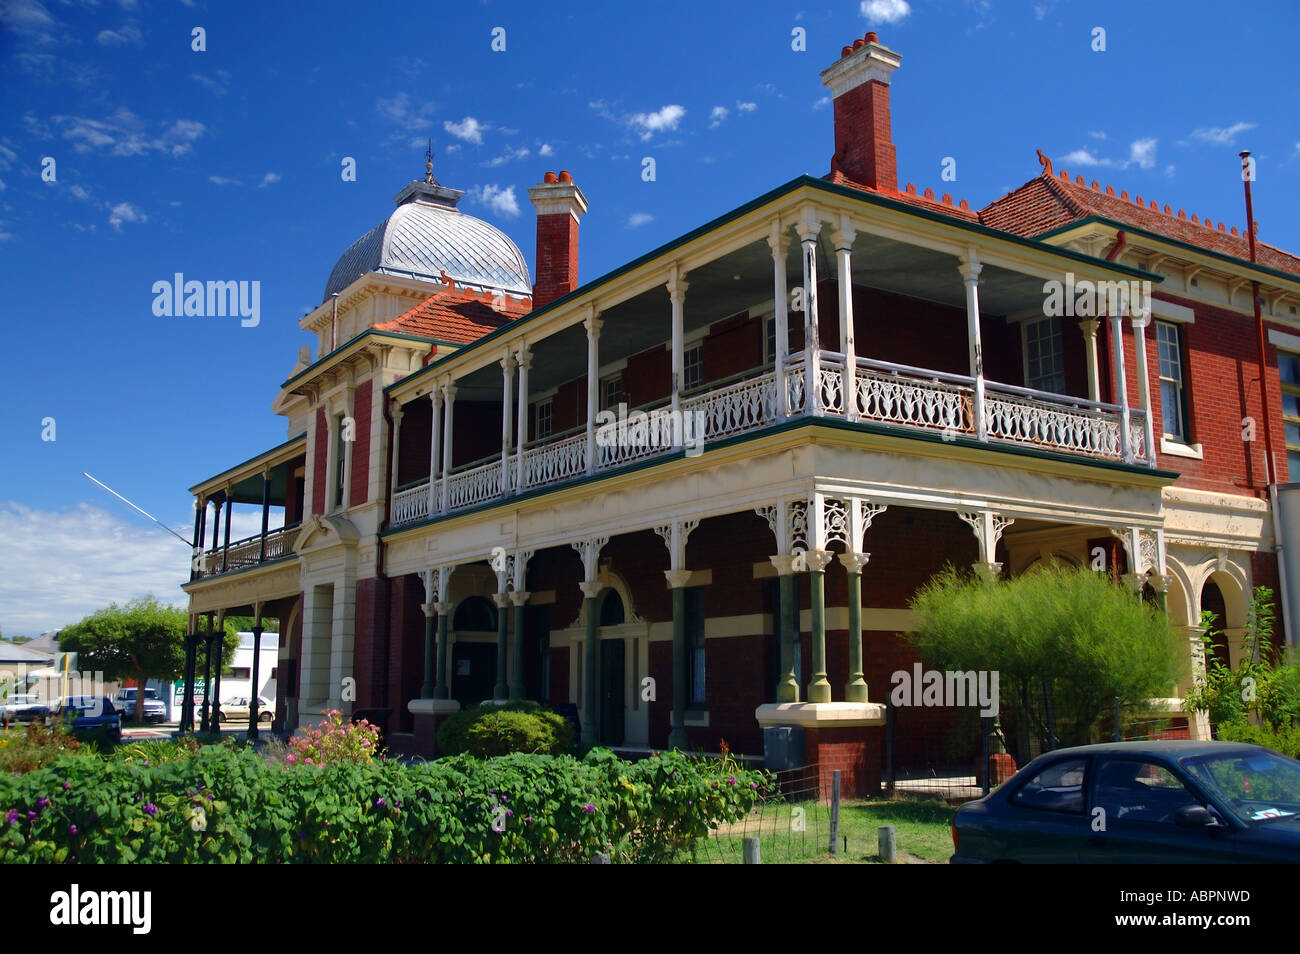 Traditional Colonial Style Architecture Of The Old Peninsula Tavern Maylands Perth Western Australia No PR